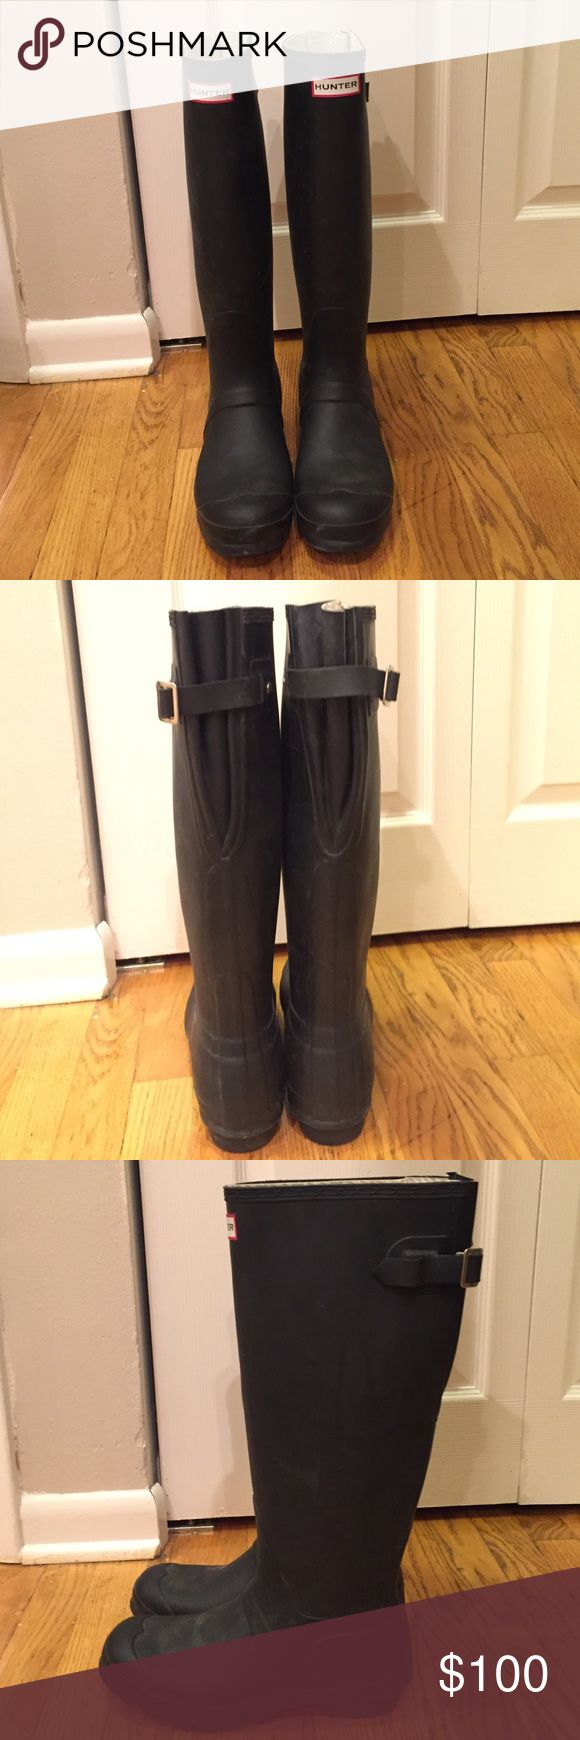 """WIDE CALF Hunter Boots Matte black expanding calf Hunter boots. These have a buckle that allows you to expand or tighten the calf area for the perfect fit! I have a 17"""" calf and these fit perfect with room to spare! These are a whole size down from what I normally wear (8) so these run LARGE!  ☔️ Make me and offer!! Hunter Shoes Winter & Rain Boots"""